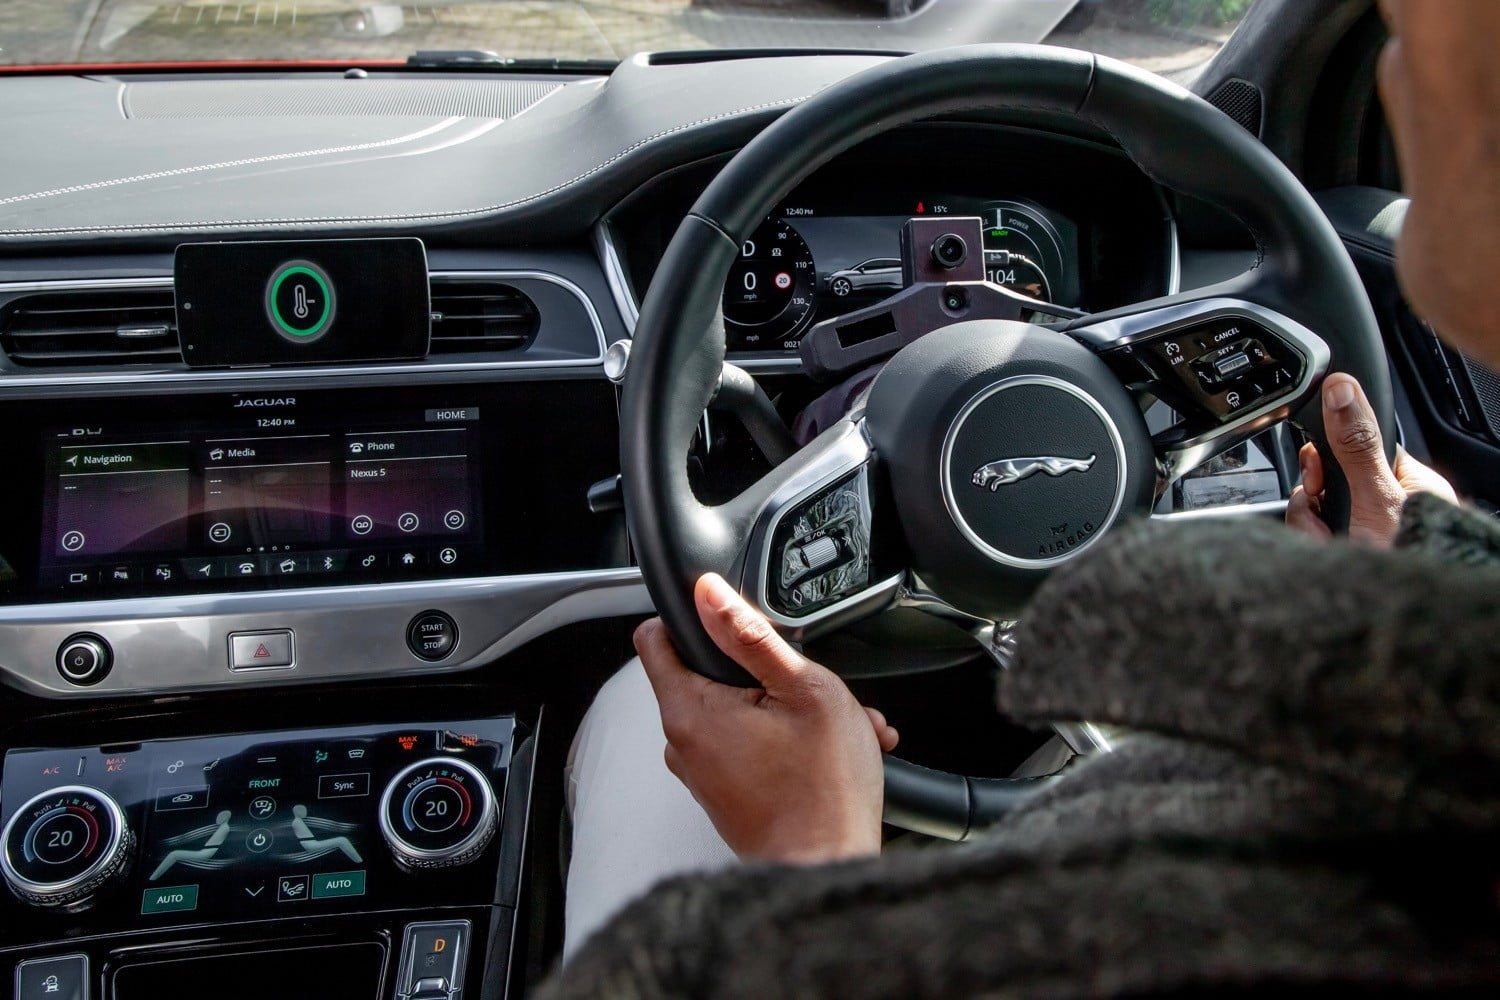 Jaguar Land Rover >> Jaguar Land Rover A I Equipped Car Responds To The Driver S Mood